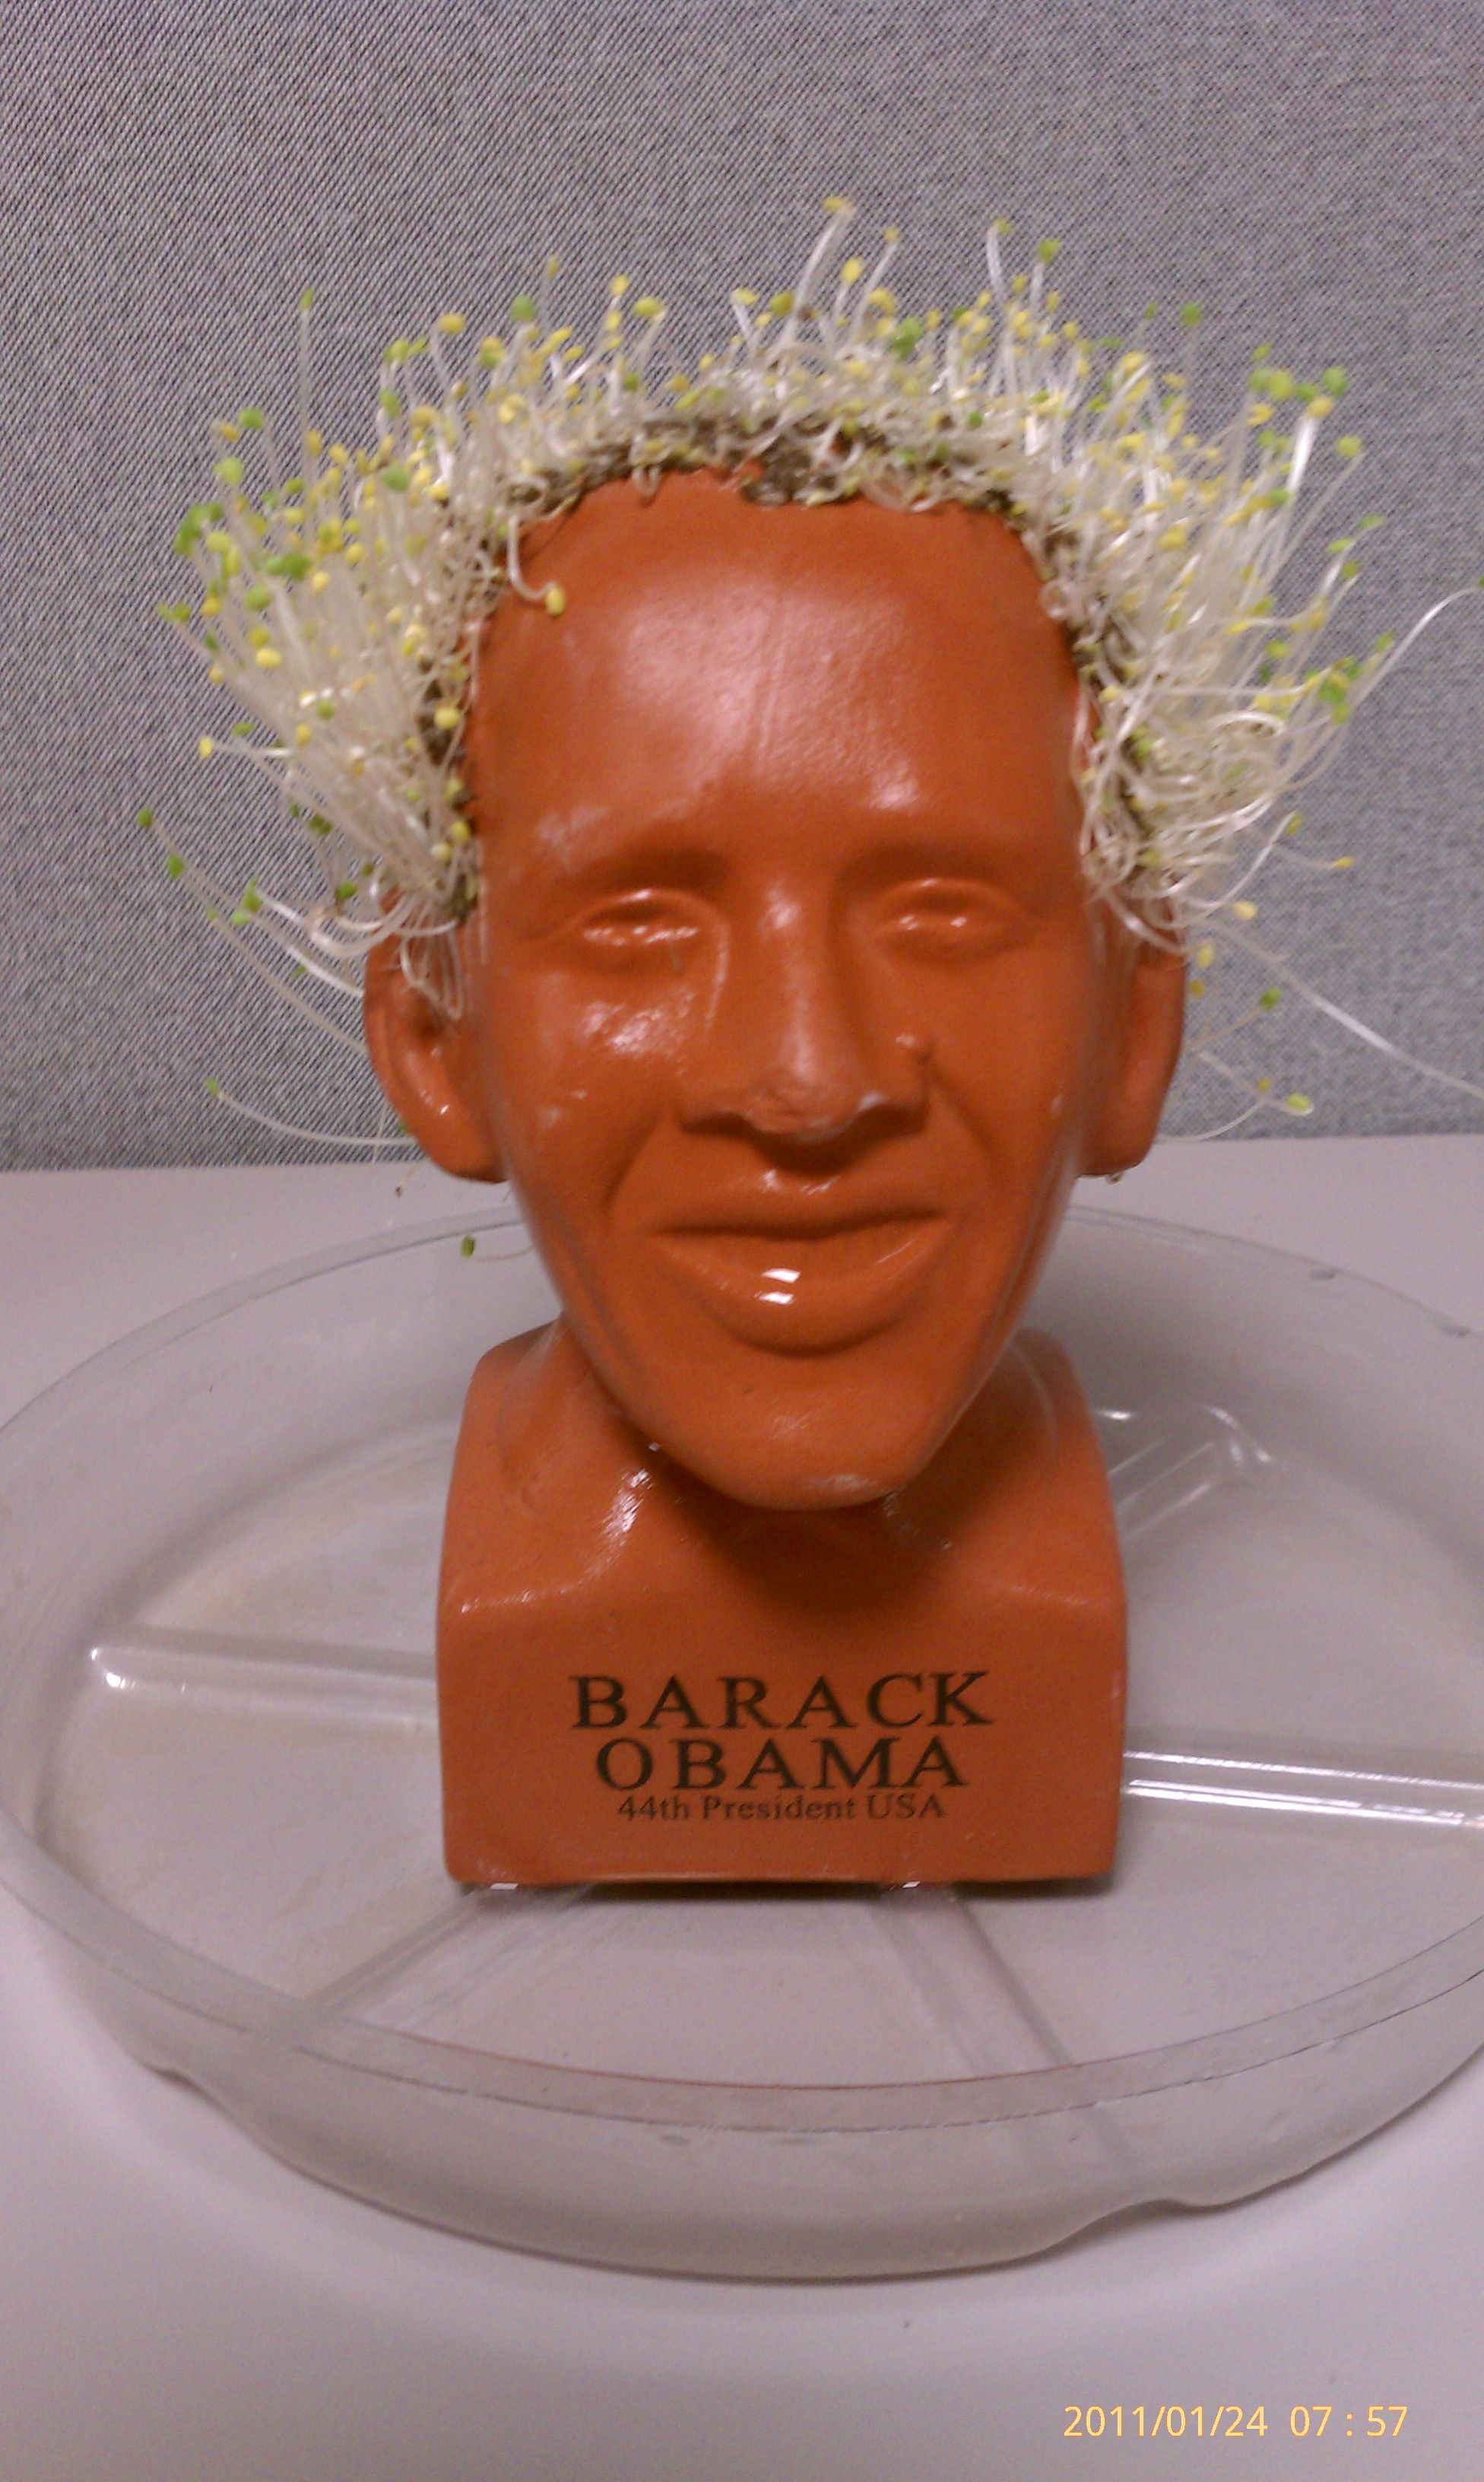 Genius Obama Chia Pet Sprouts Growing Out Like An Old Mans Hair So Funny 8 Out Of 10 What Do You Think Obama Chia Pet Chia Pet Hair Humor